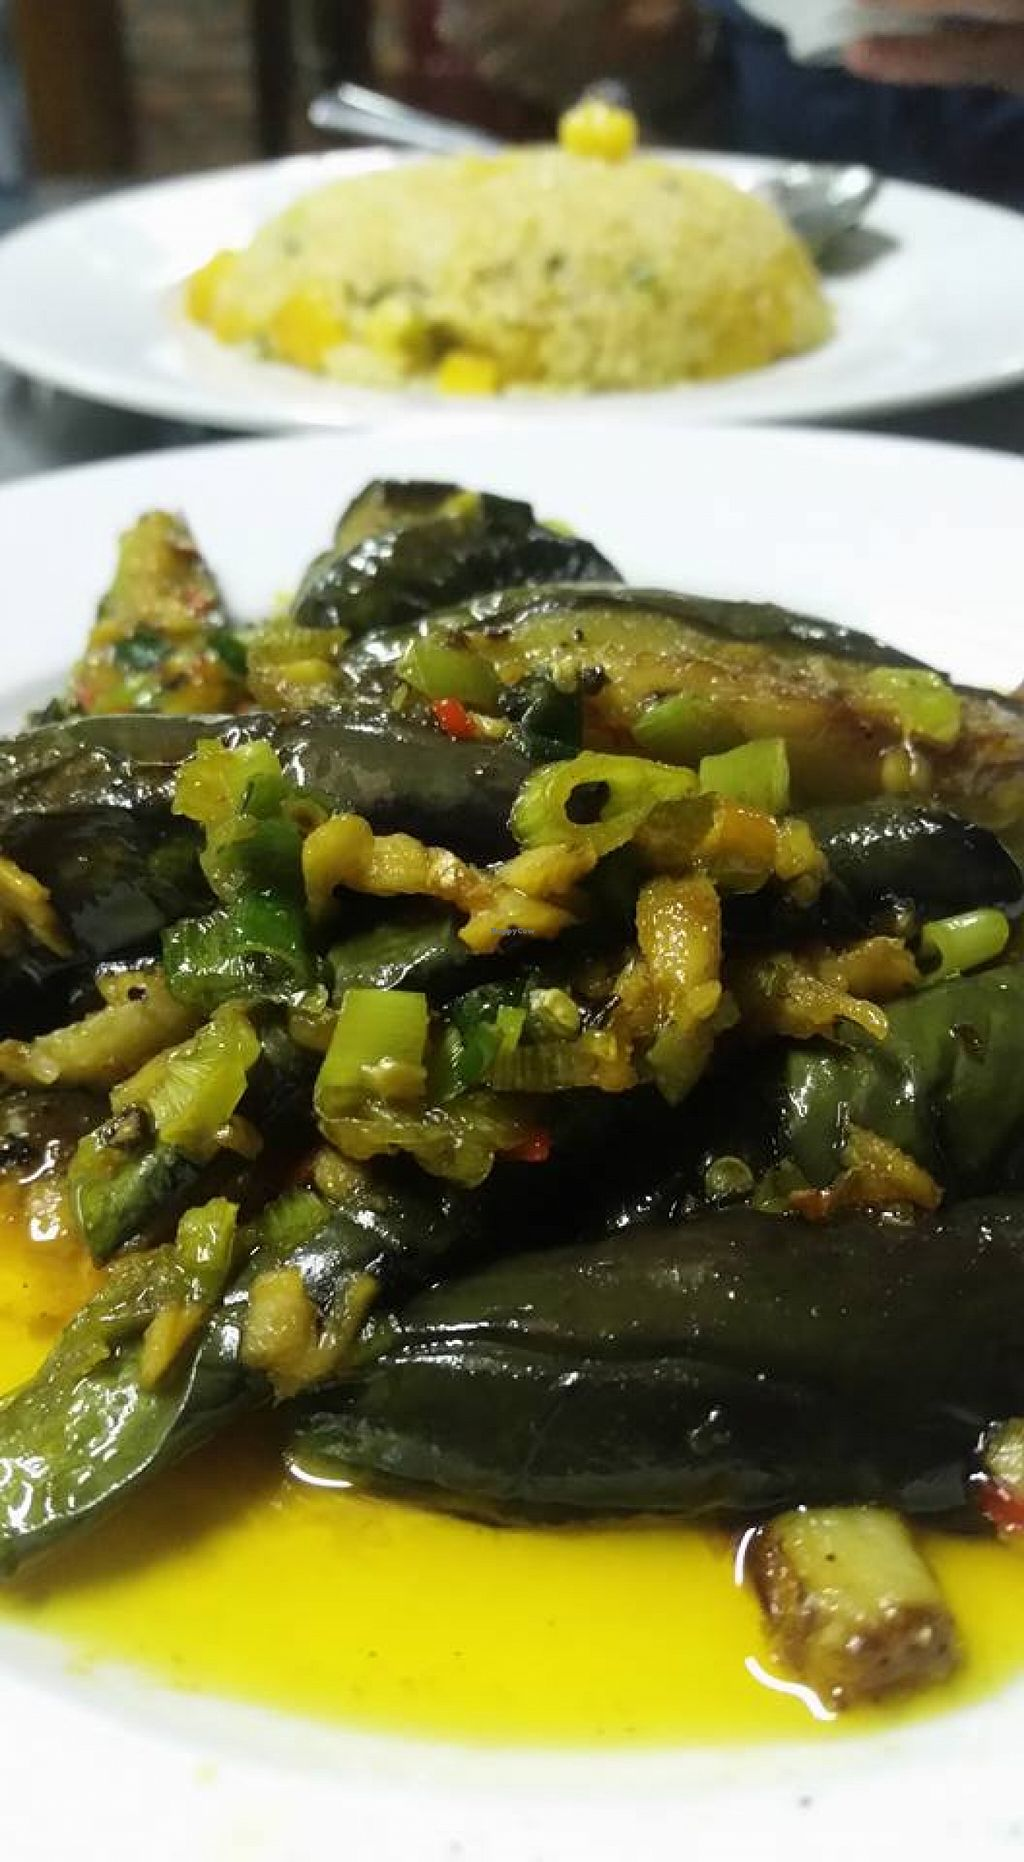 """Photo of CLOSED: Thien Nghia  by <a href=""""/members/profile/kiwinyc"""">kiwinyc</a> <br/>Szechuan Eggplant - So good <br/> April 9, 2016  - <a href='/contact/abuse/image/54349/143651'>Report</a>"""